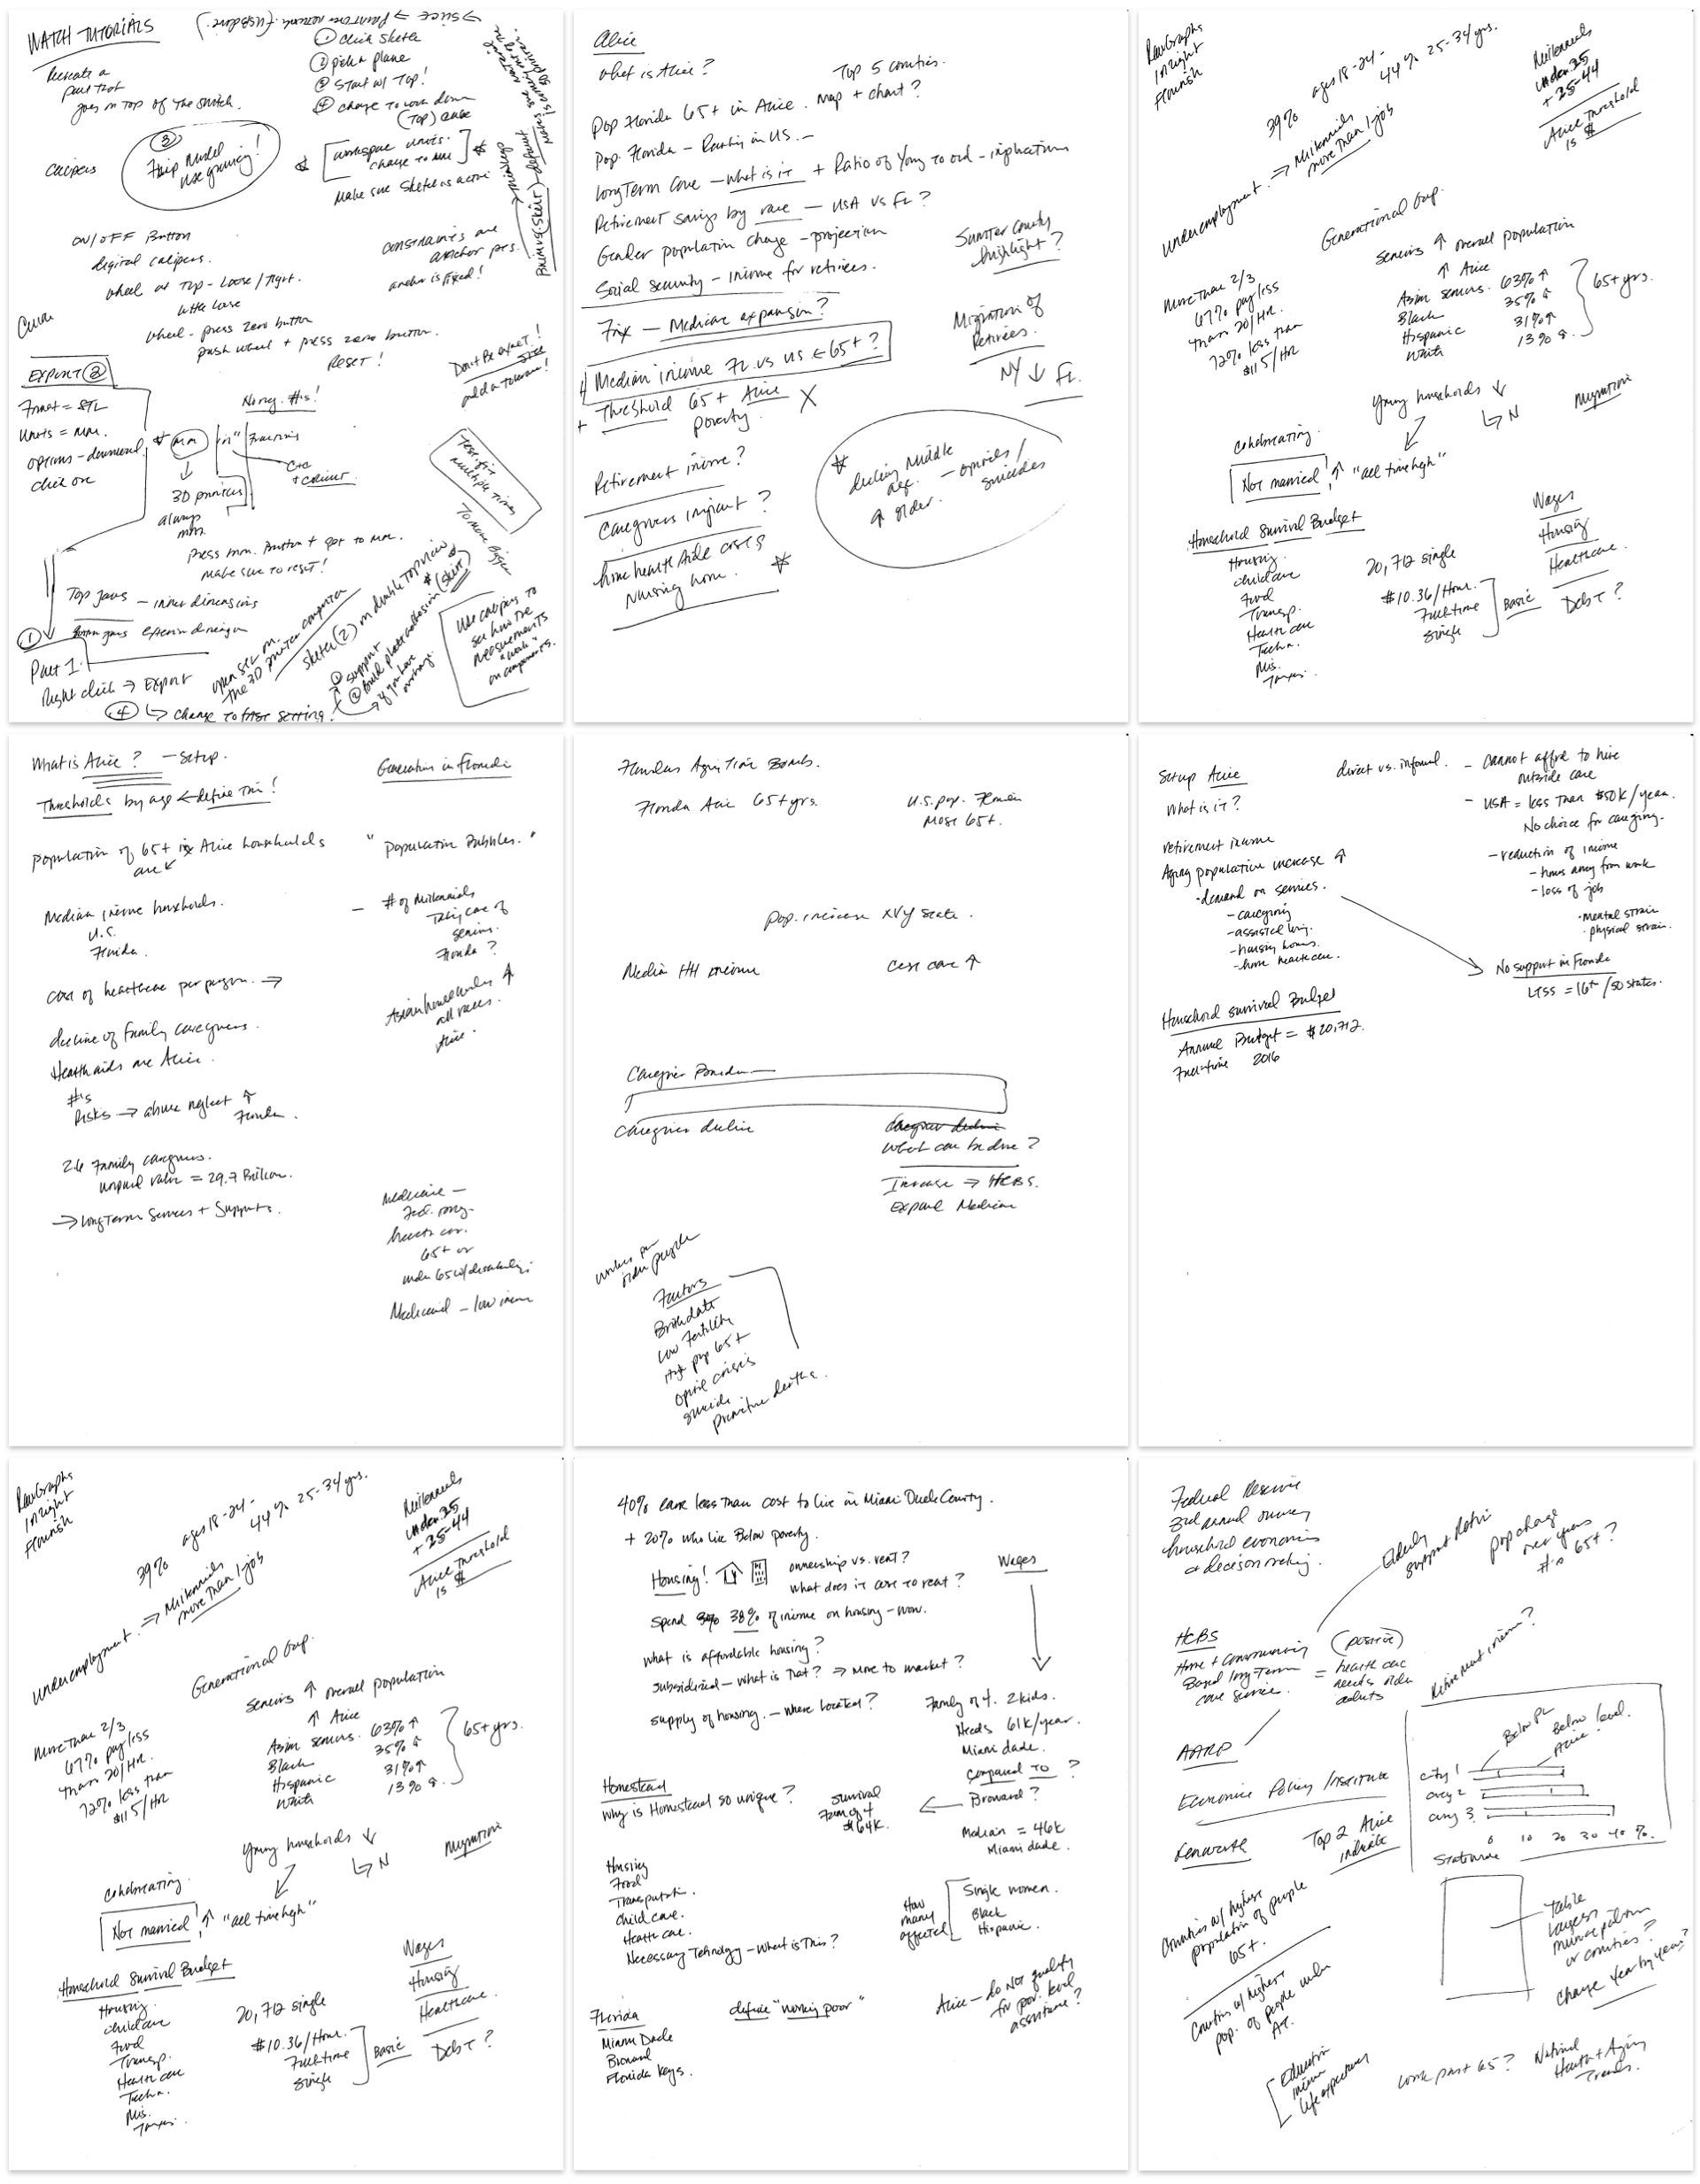 Mind mapping brain dump